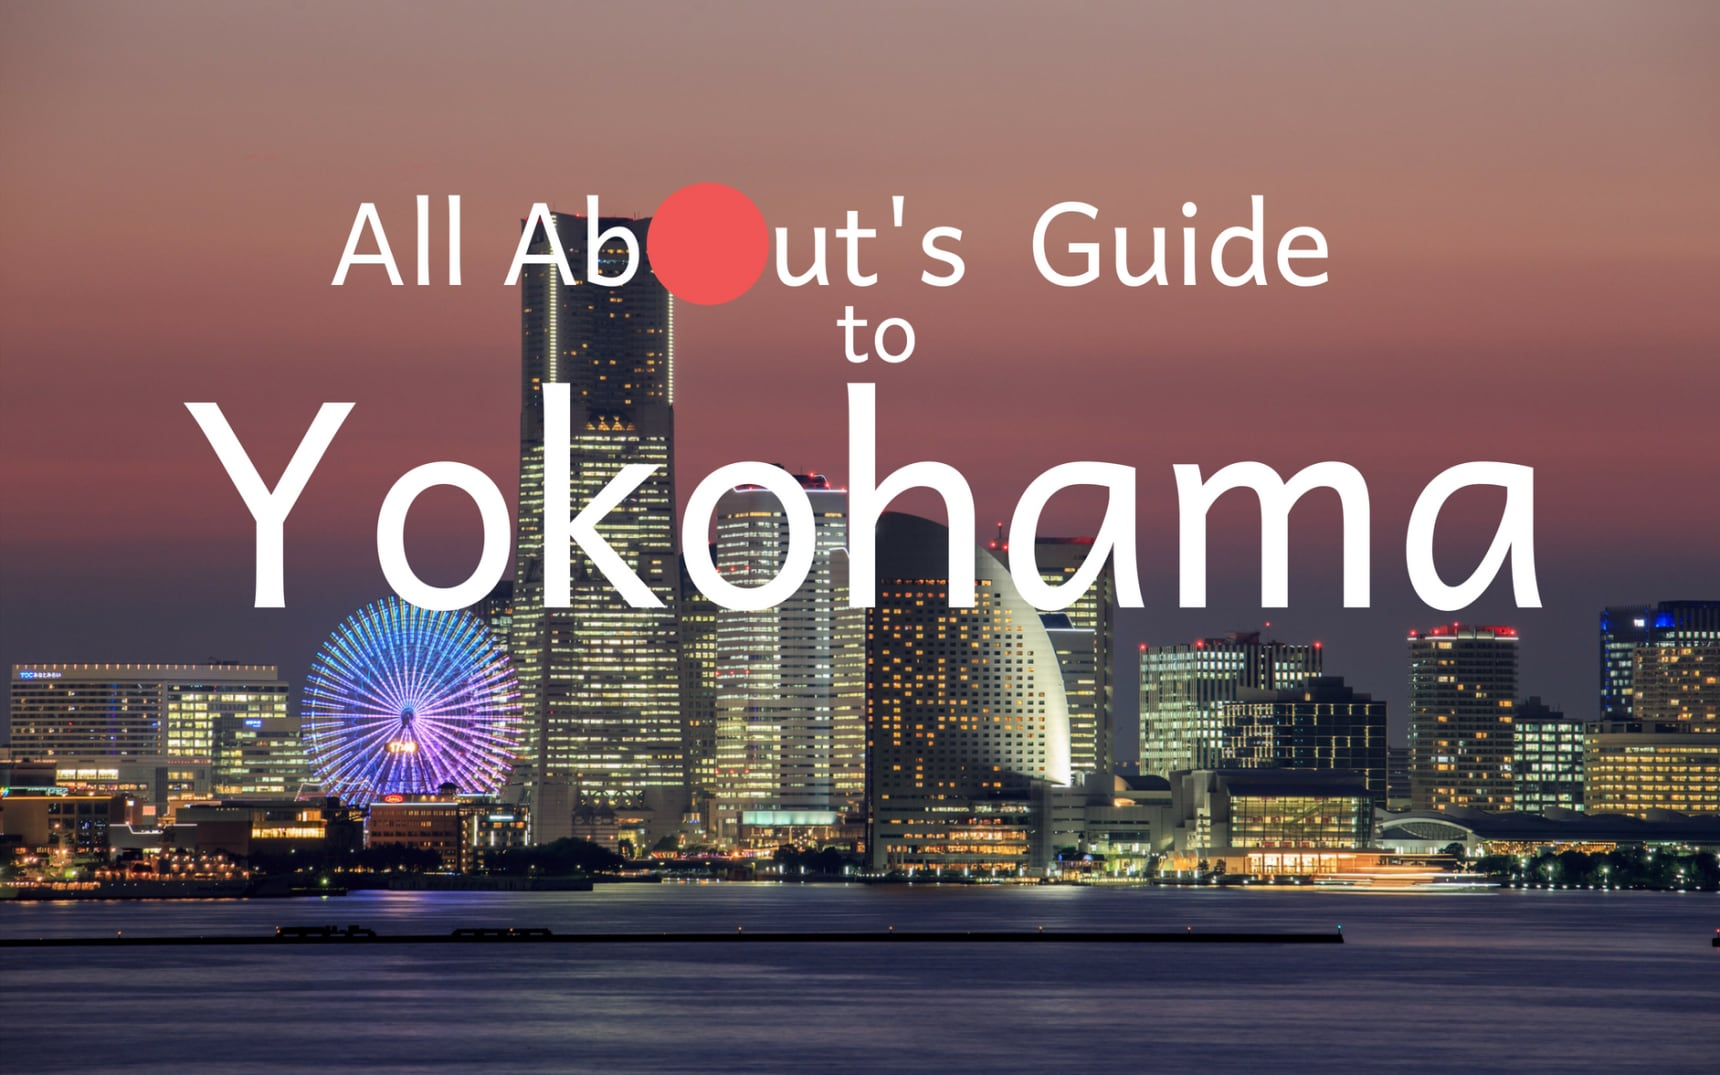 All About's Guide to Yokohama